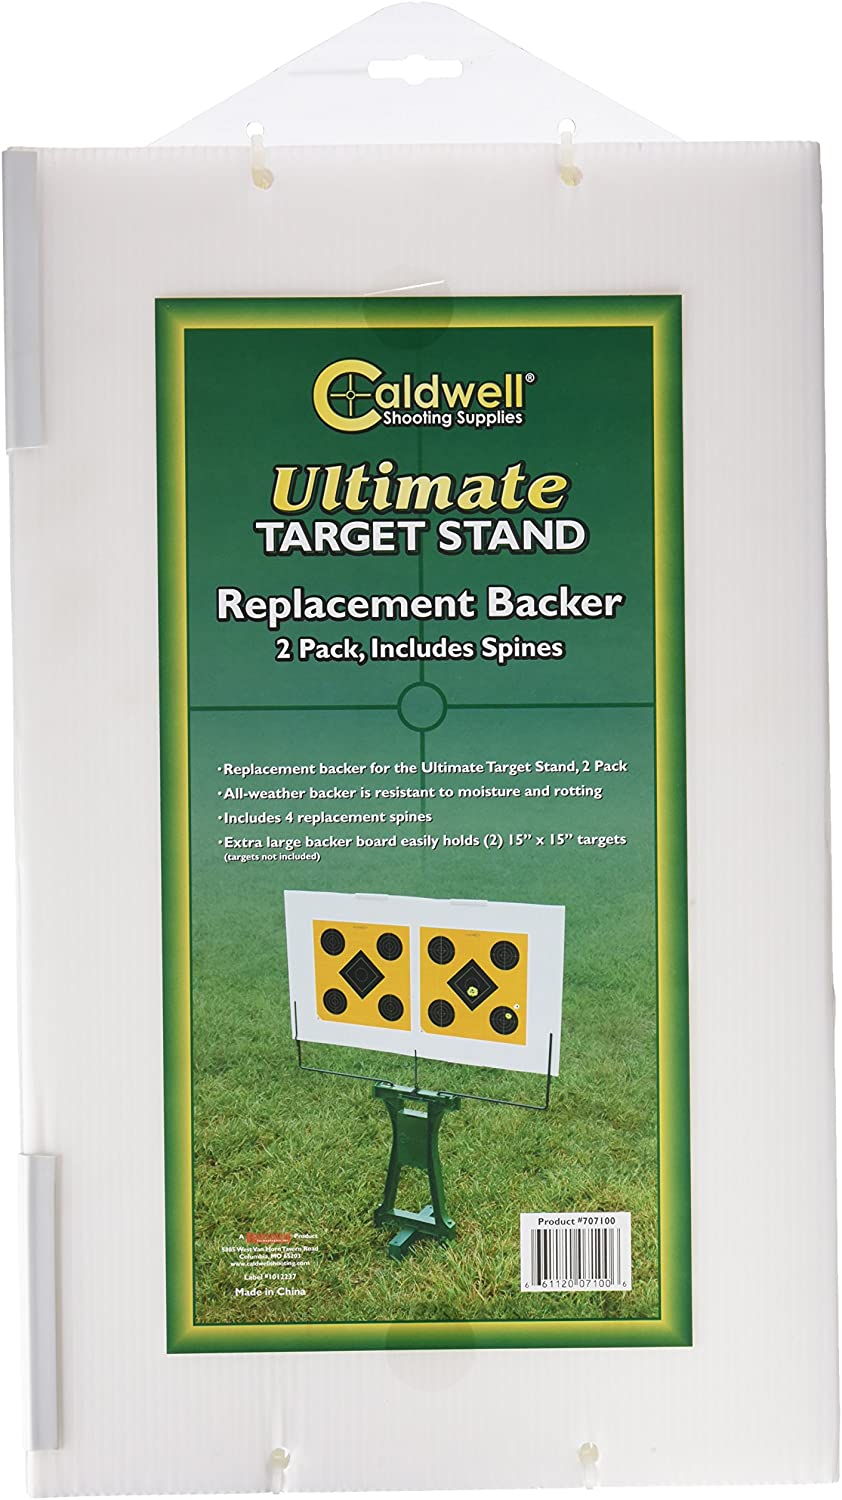 Caldwell Replacement Backers for the Ultimate Target Stand, 2-pack